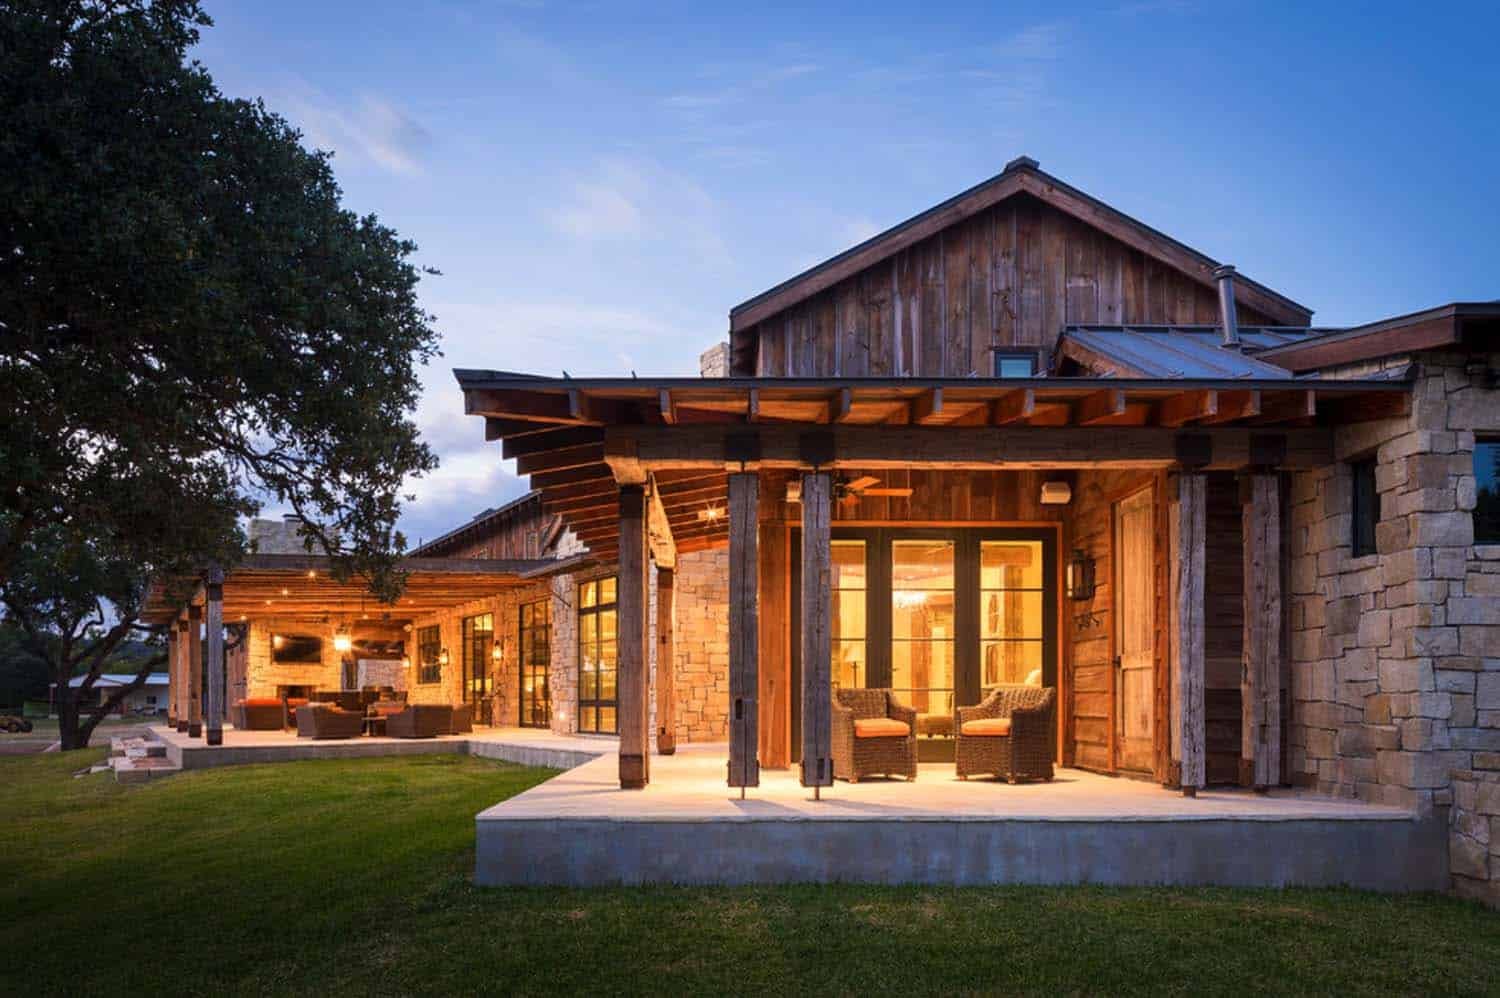 Modern rustic barn style retreat in texas hill country for Modern home designs under 200k